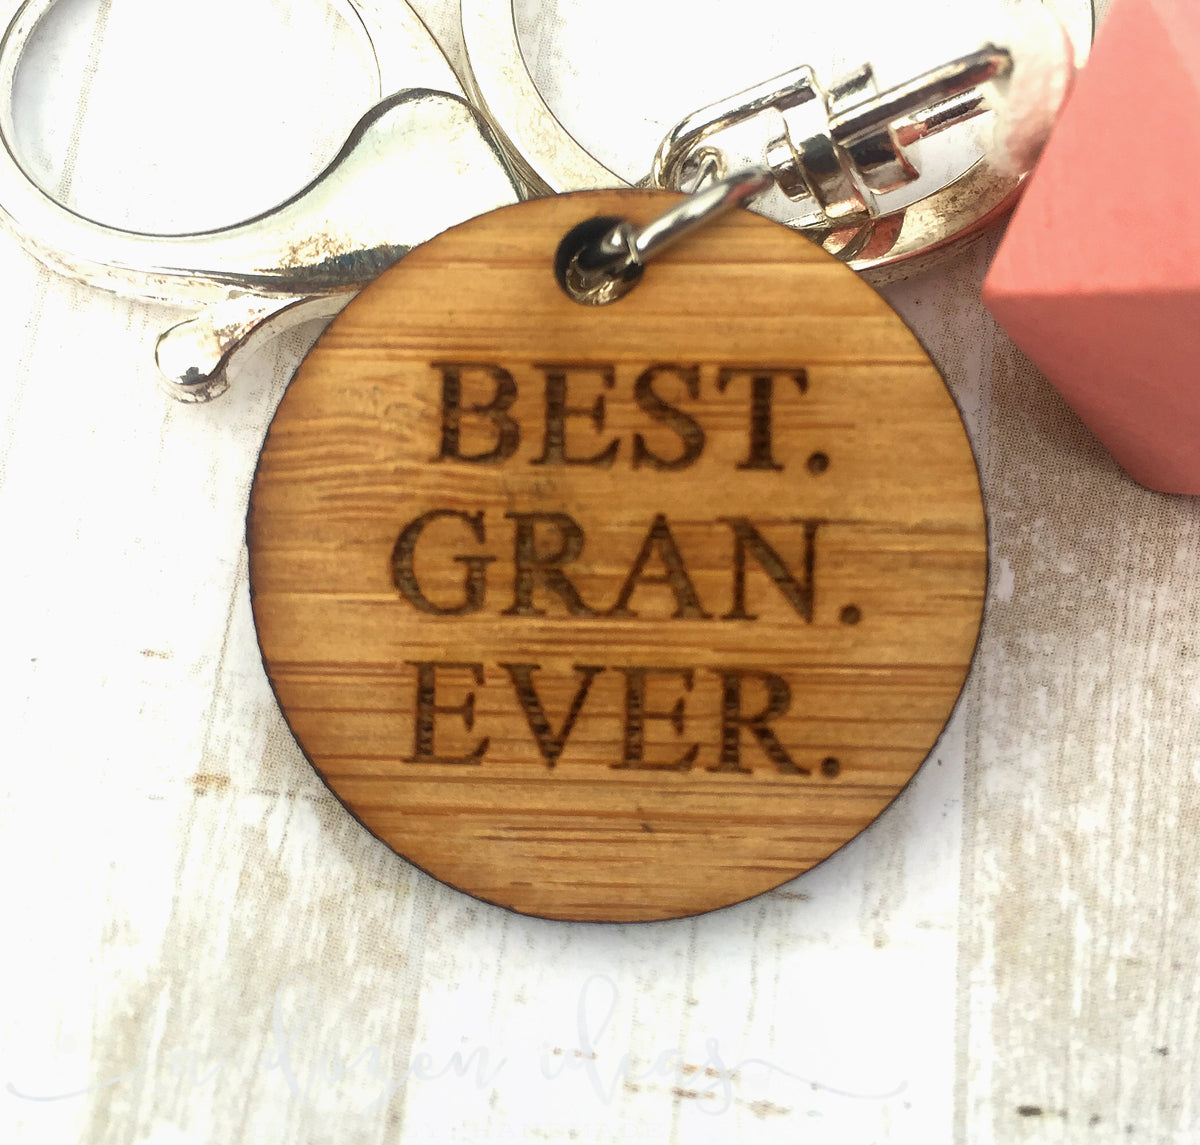 Add-on - Best. Gran. Ever